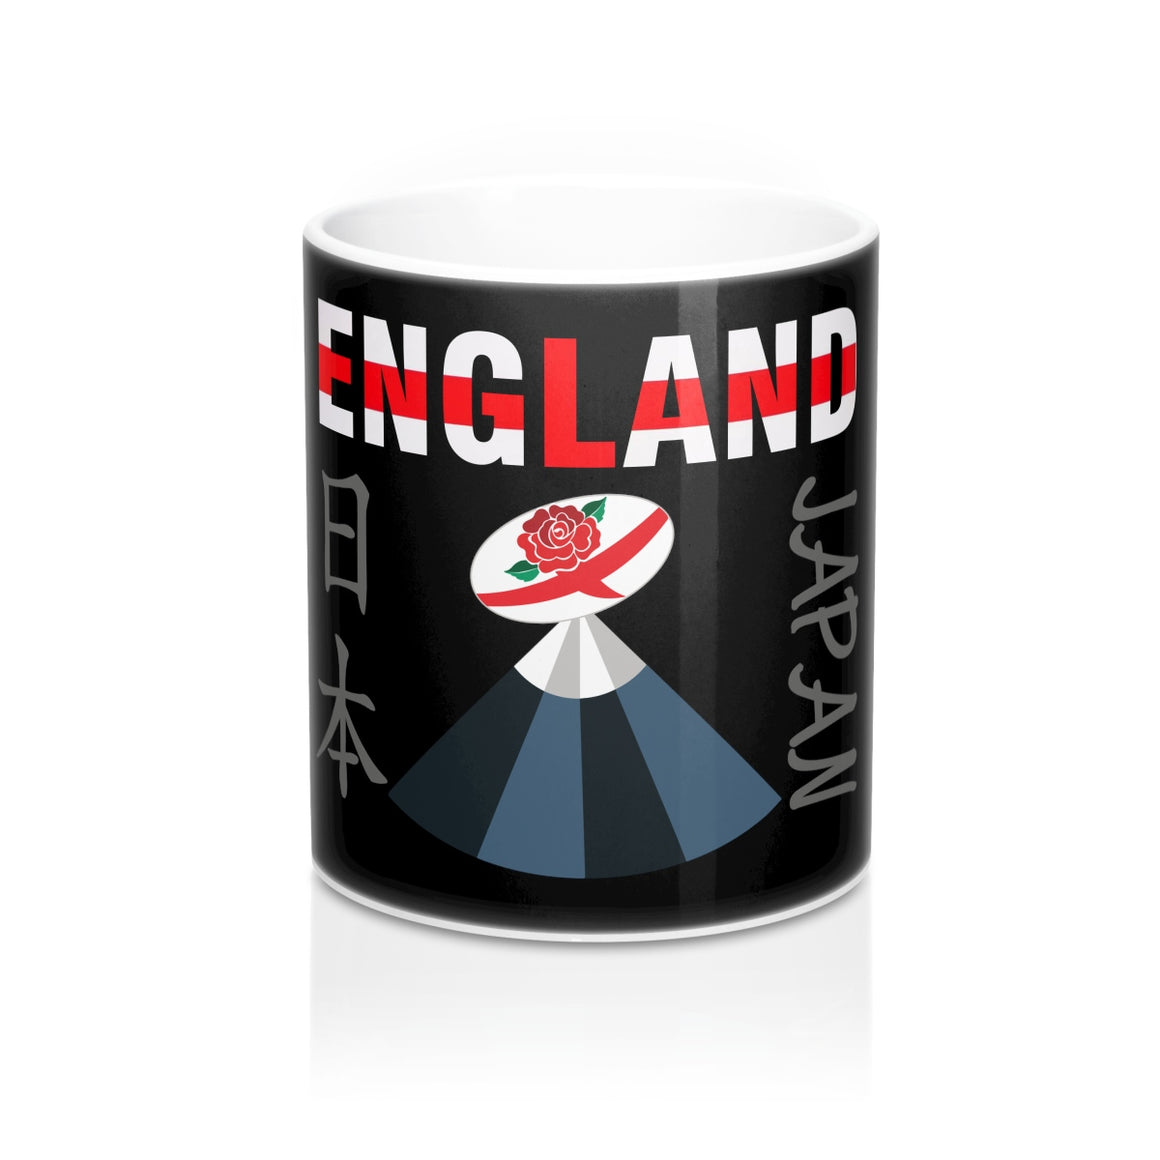 England Rugby World Cup 2019 Japan Mug 11oz Black